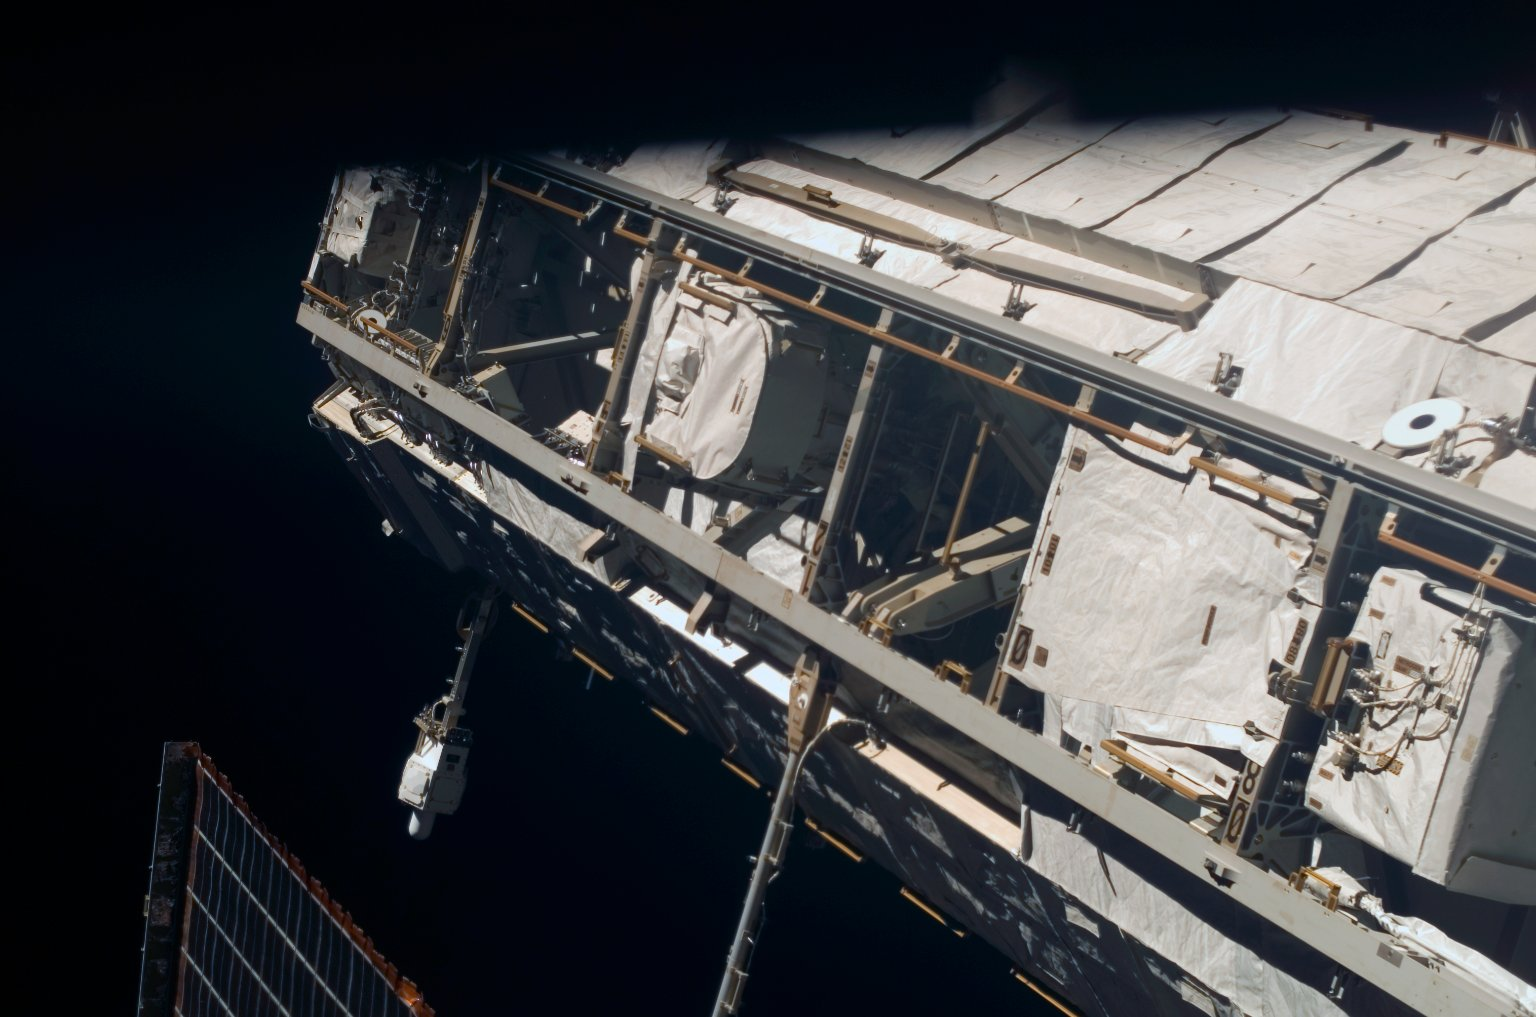 View of the P1 Truss taken during an ISS survey on STS-121 / Expedition 13 joint operations